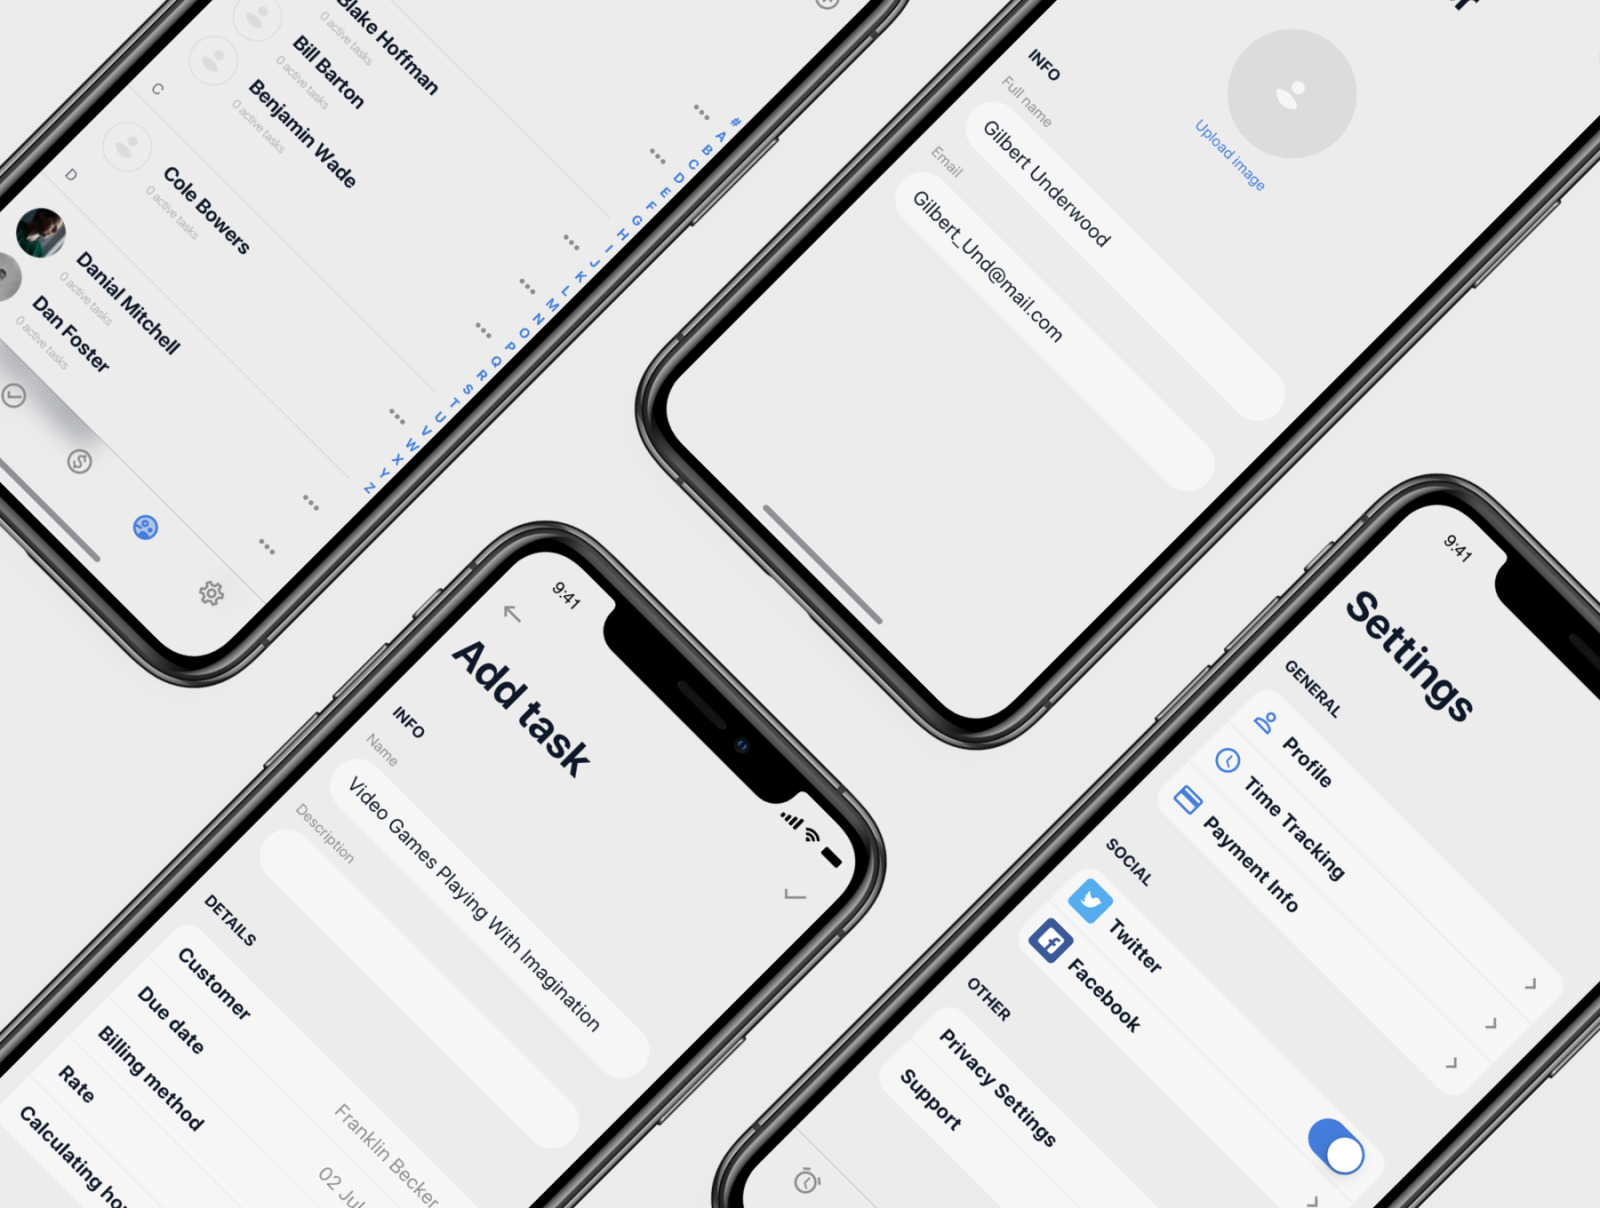 Timetracker iOS UI Kit